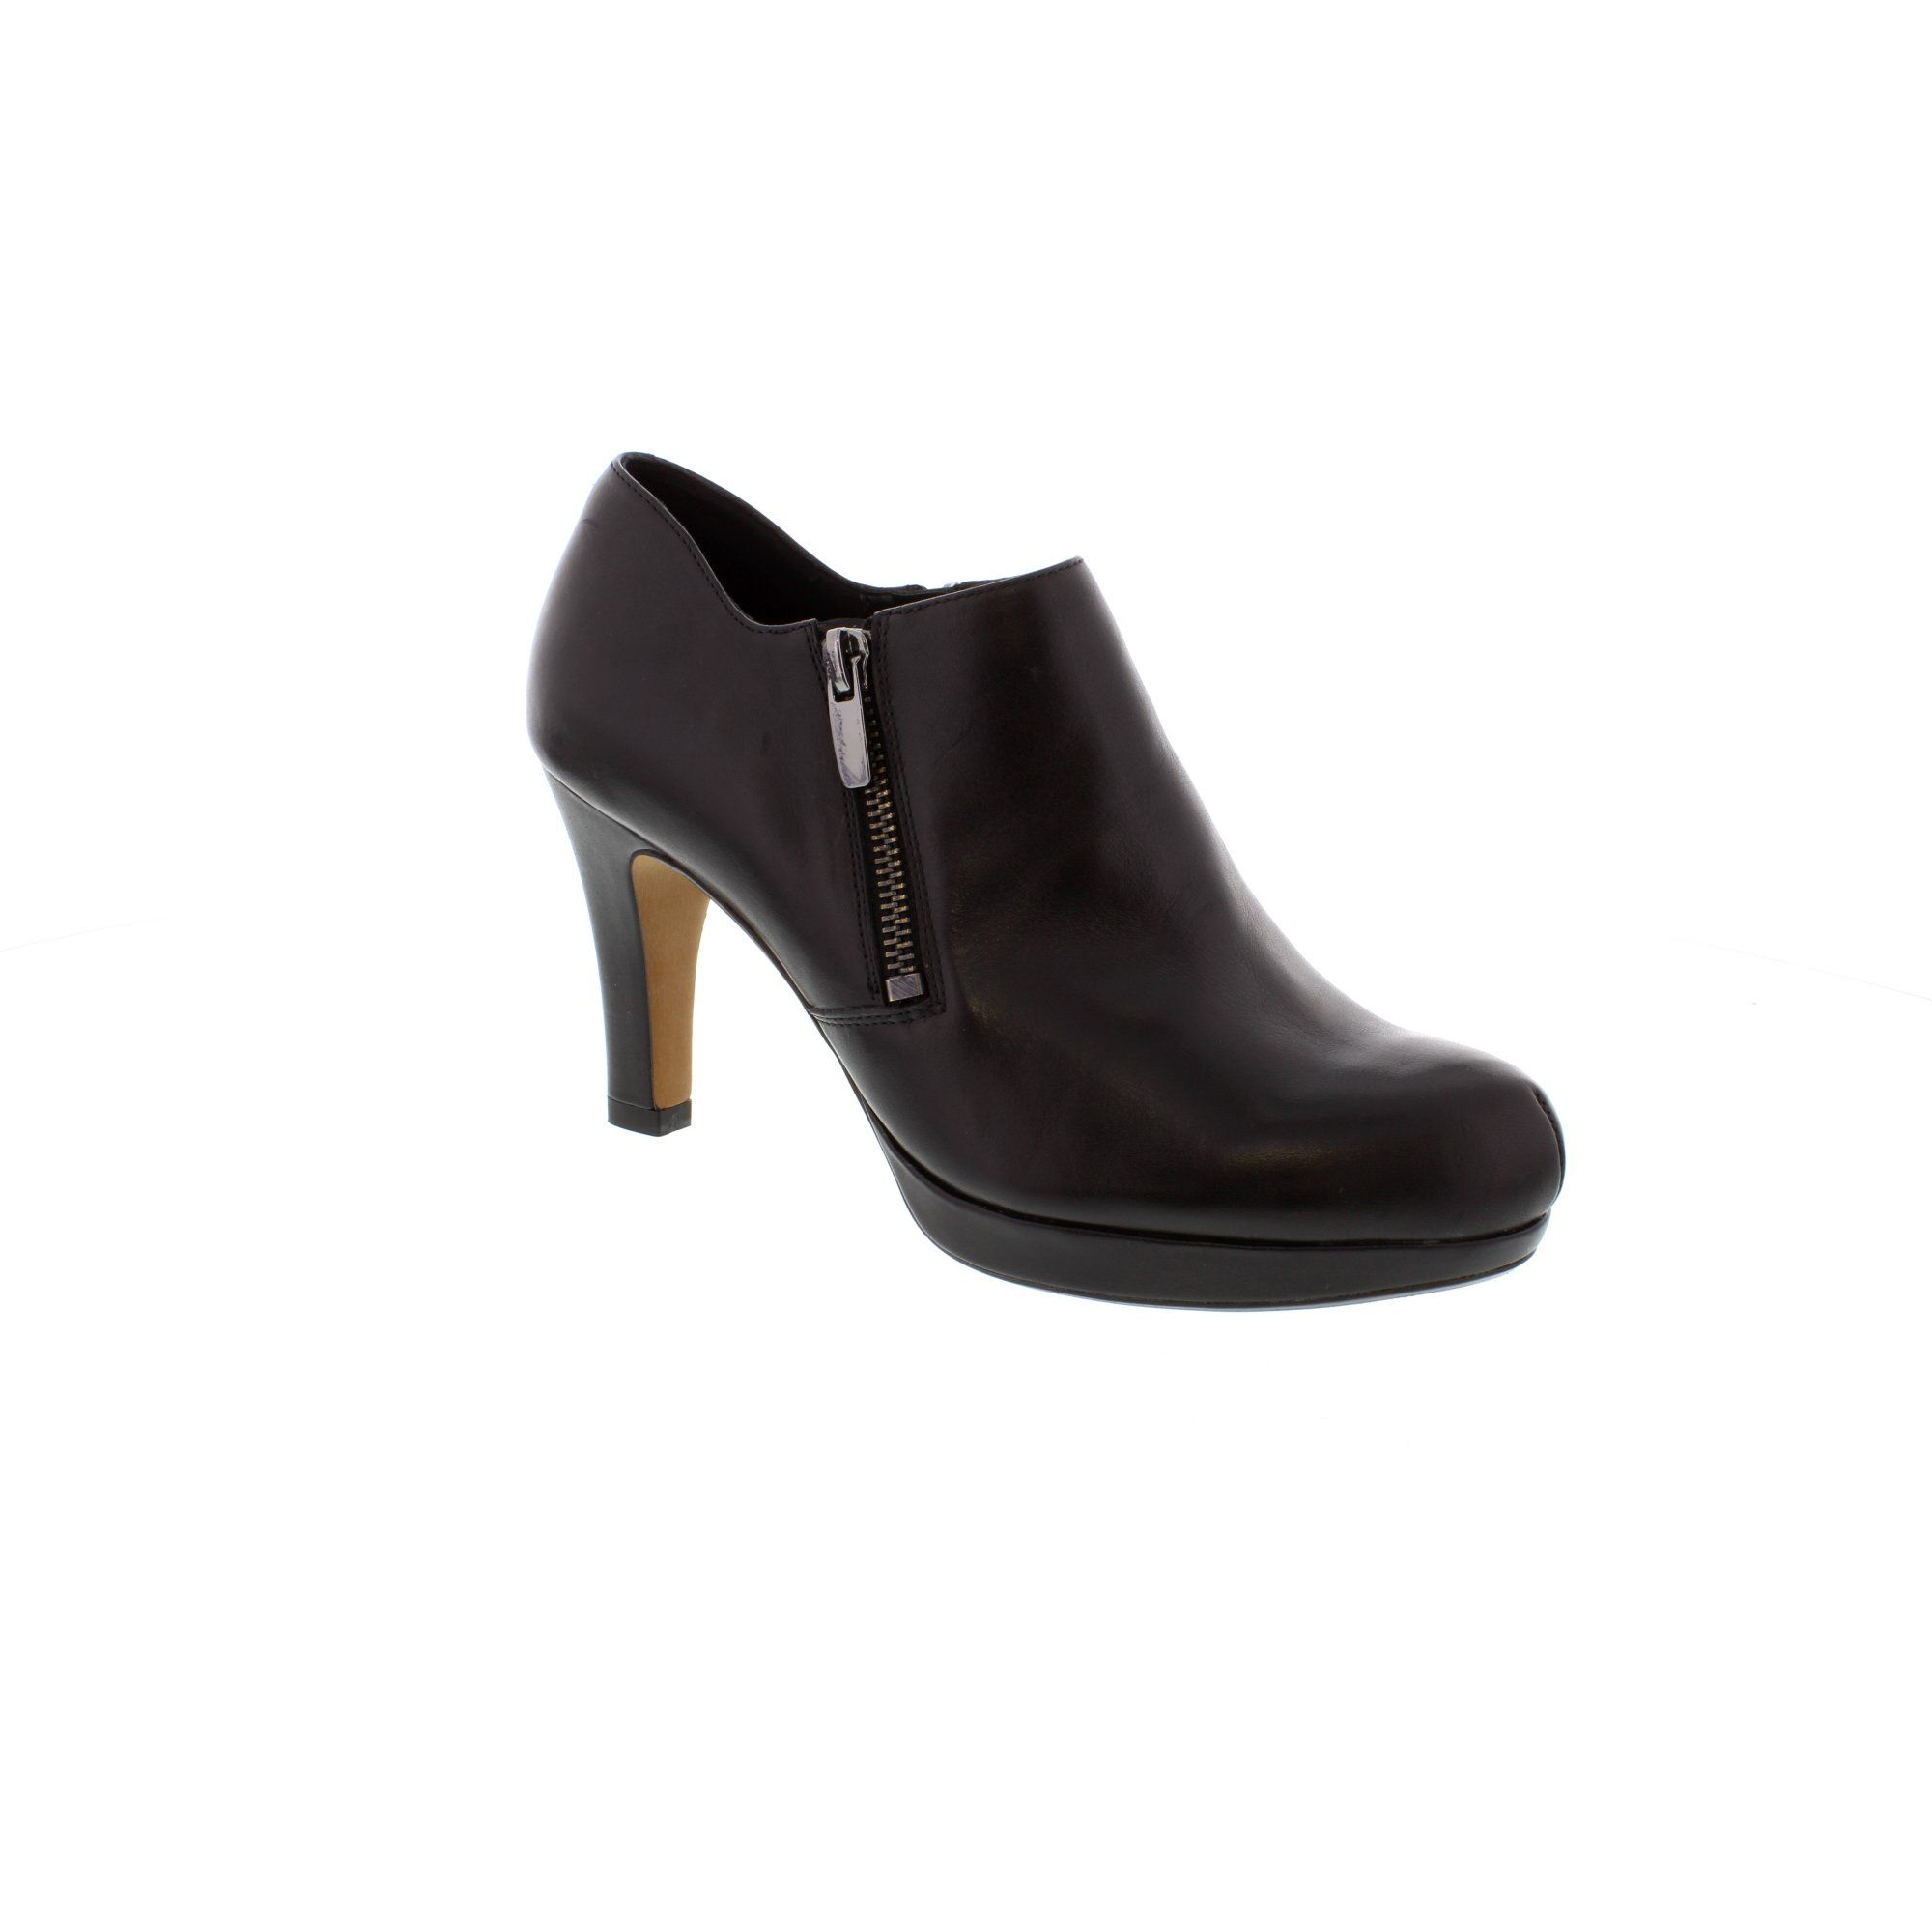 Clarks Amos Kendra Black Leather Ladies Shoe Boot | Autumn/Winter ...